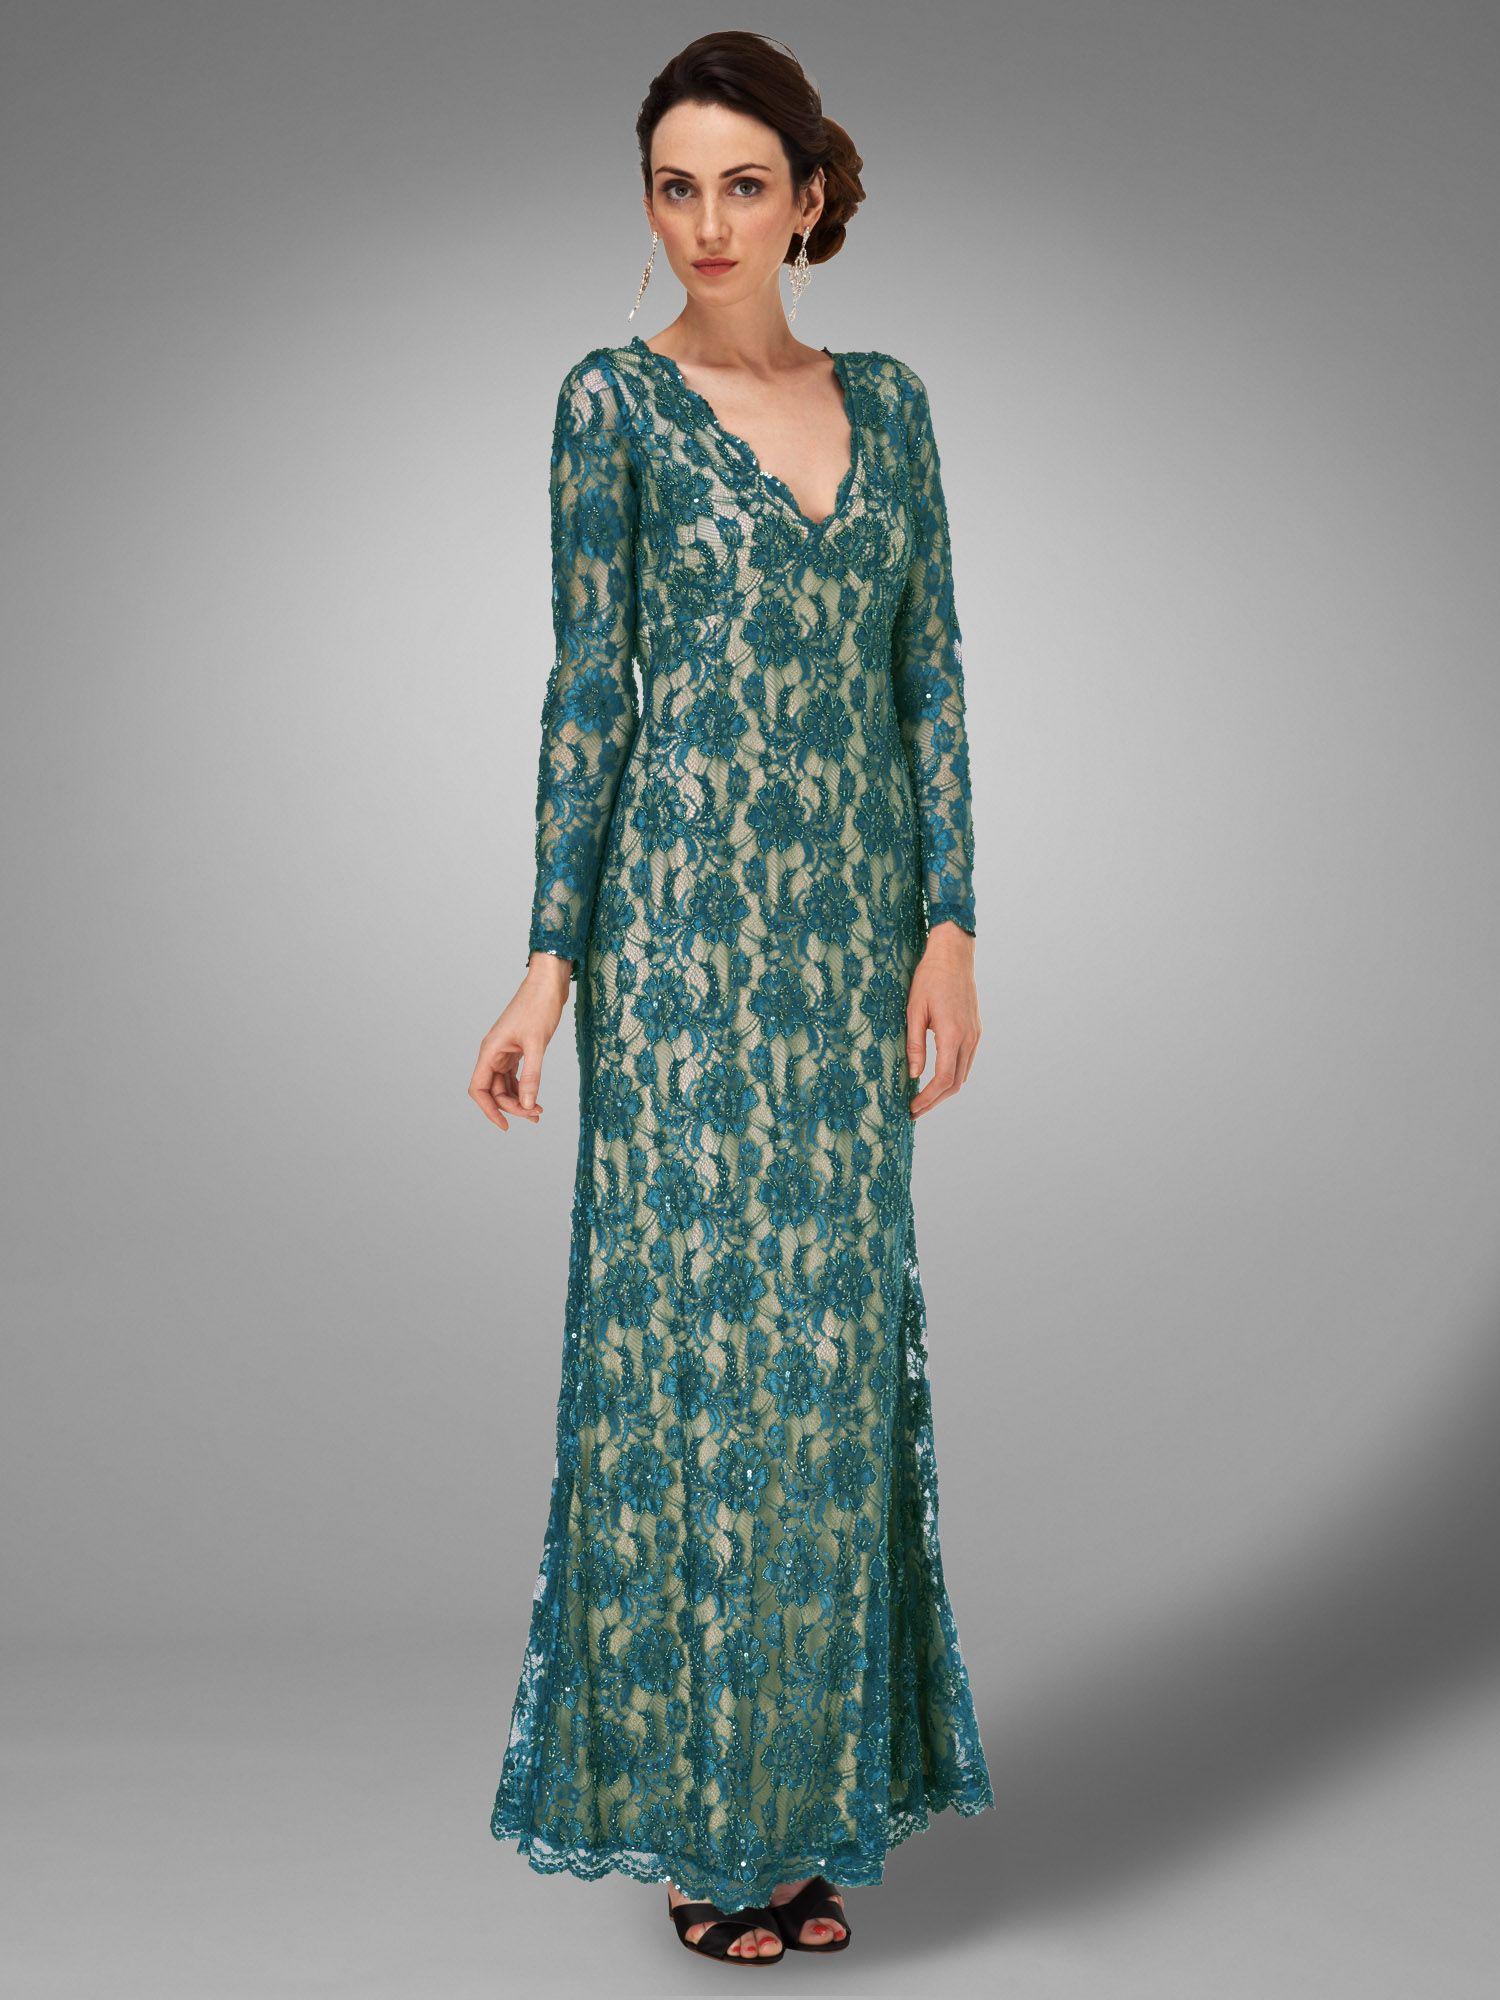 Berkeley full length dress